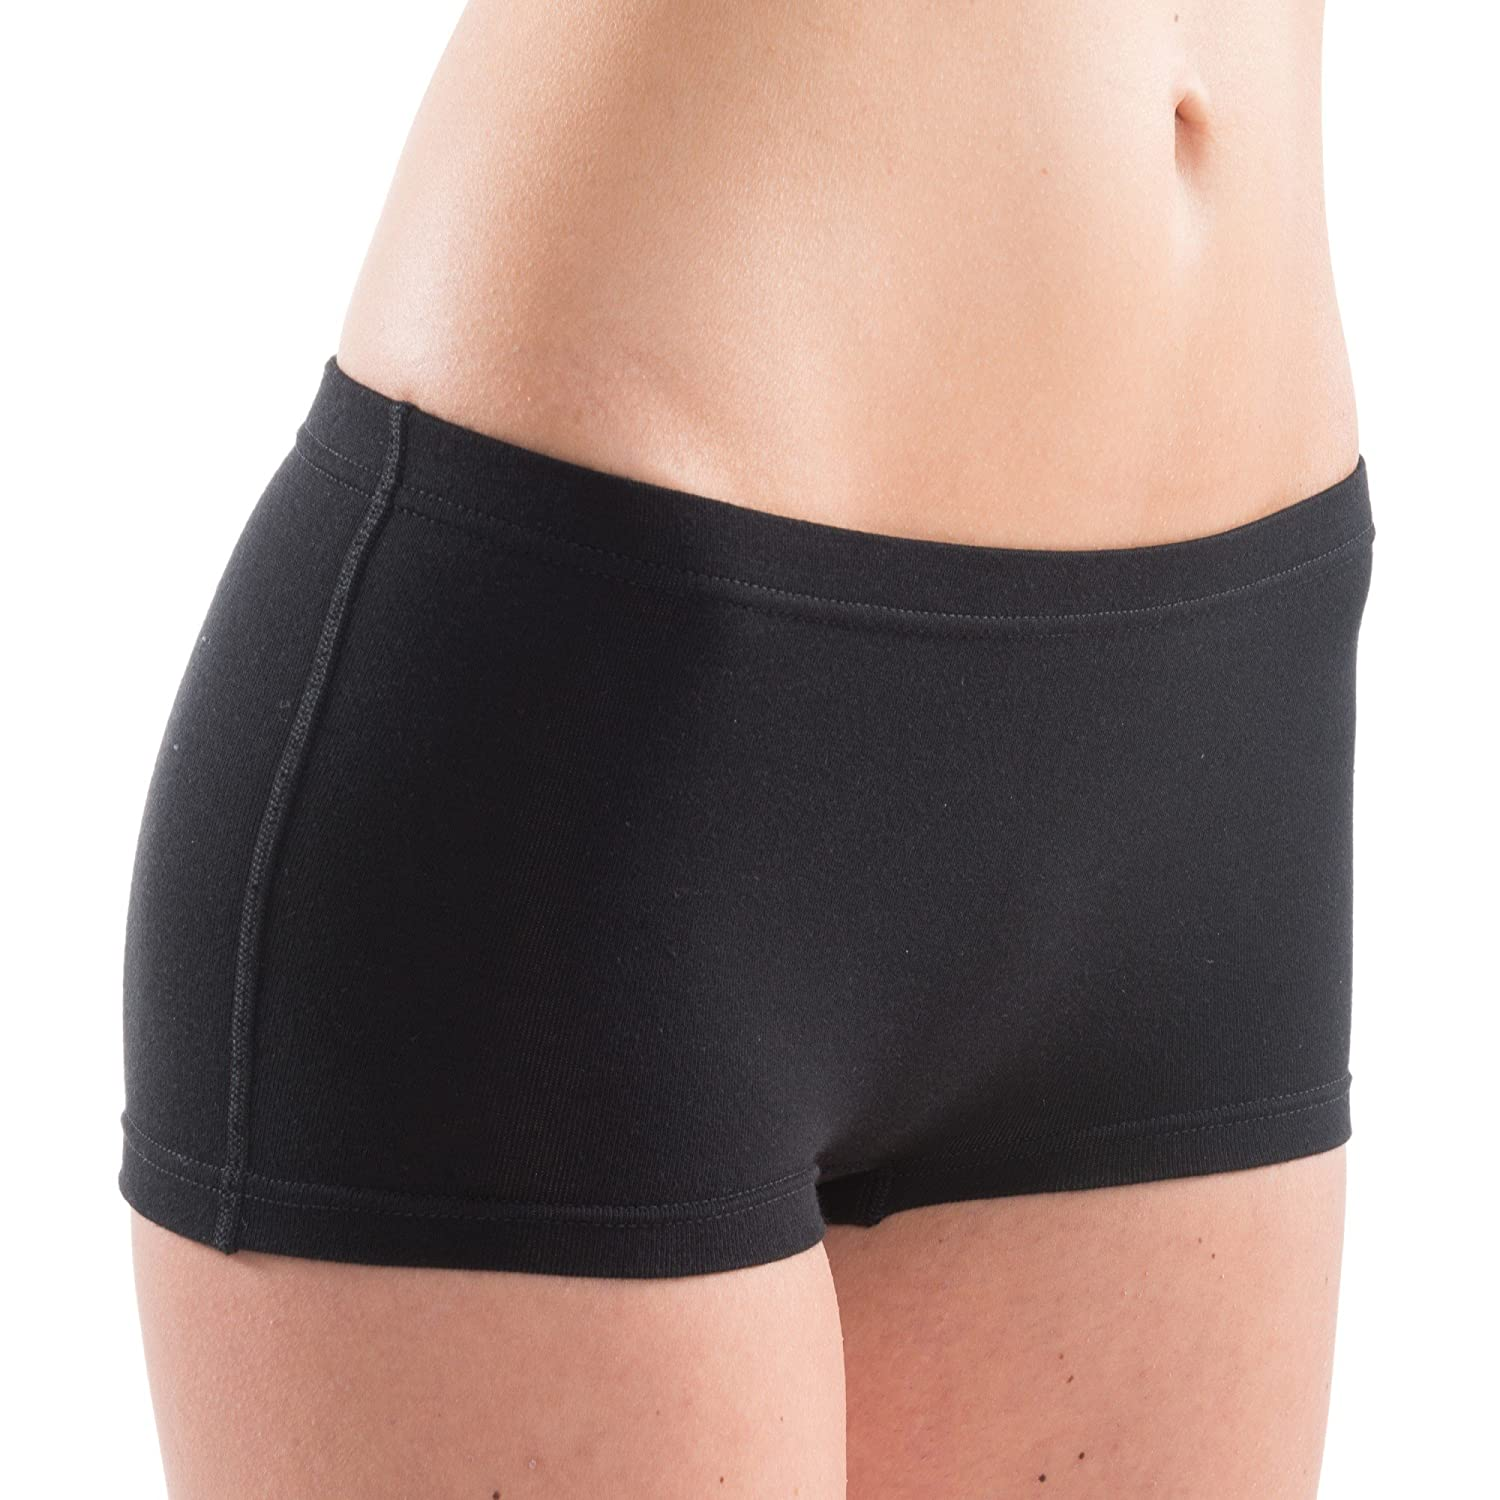 HERMKO 2 x 65700 Damen atlethic Panty als Funktionsw/äsche Exclusive by